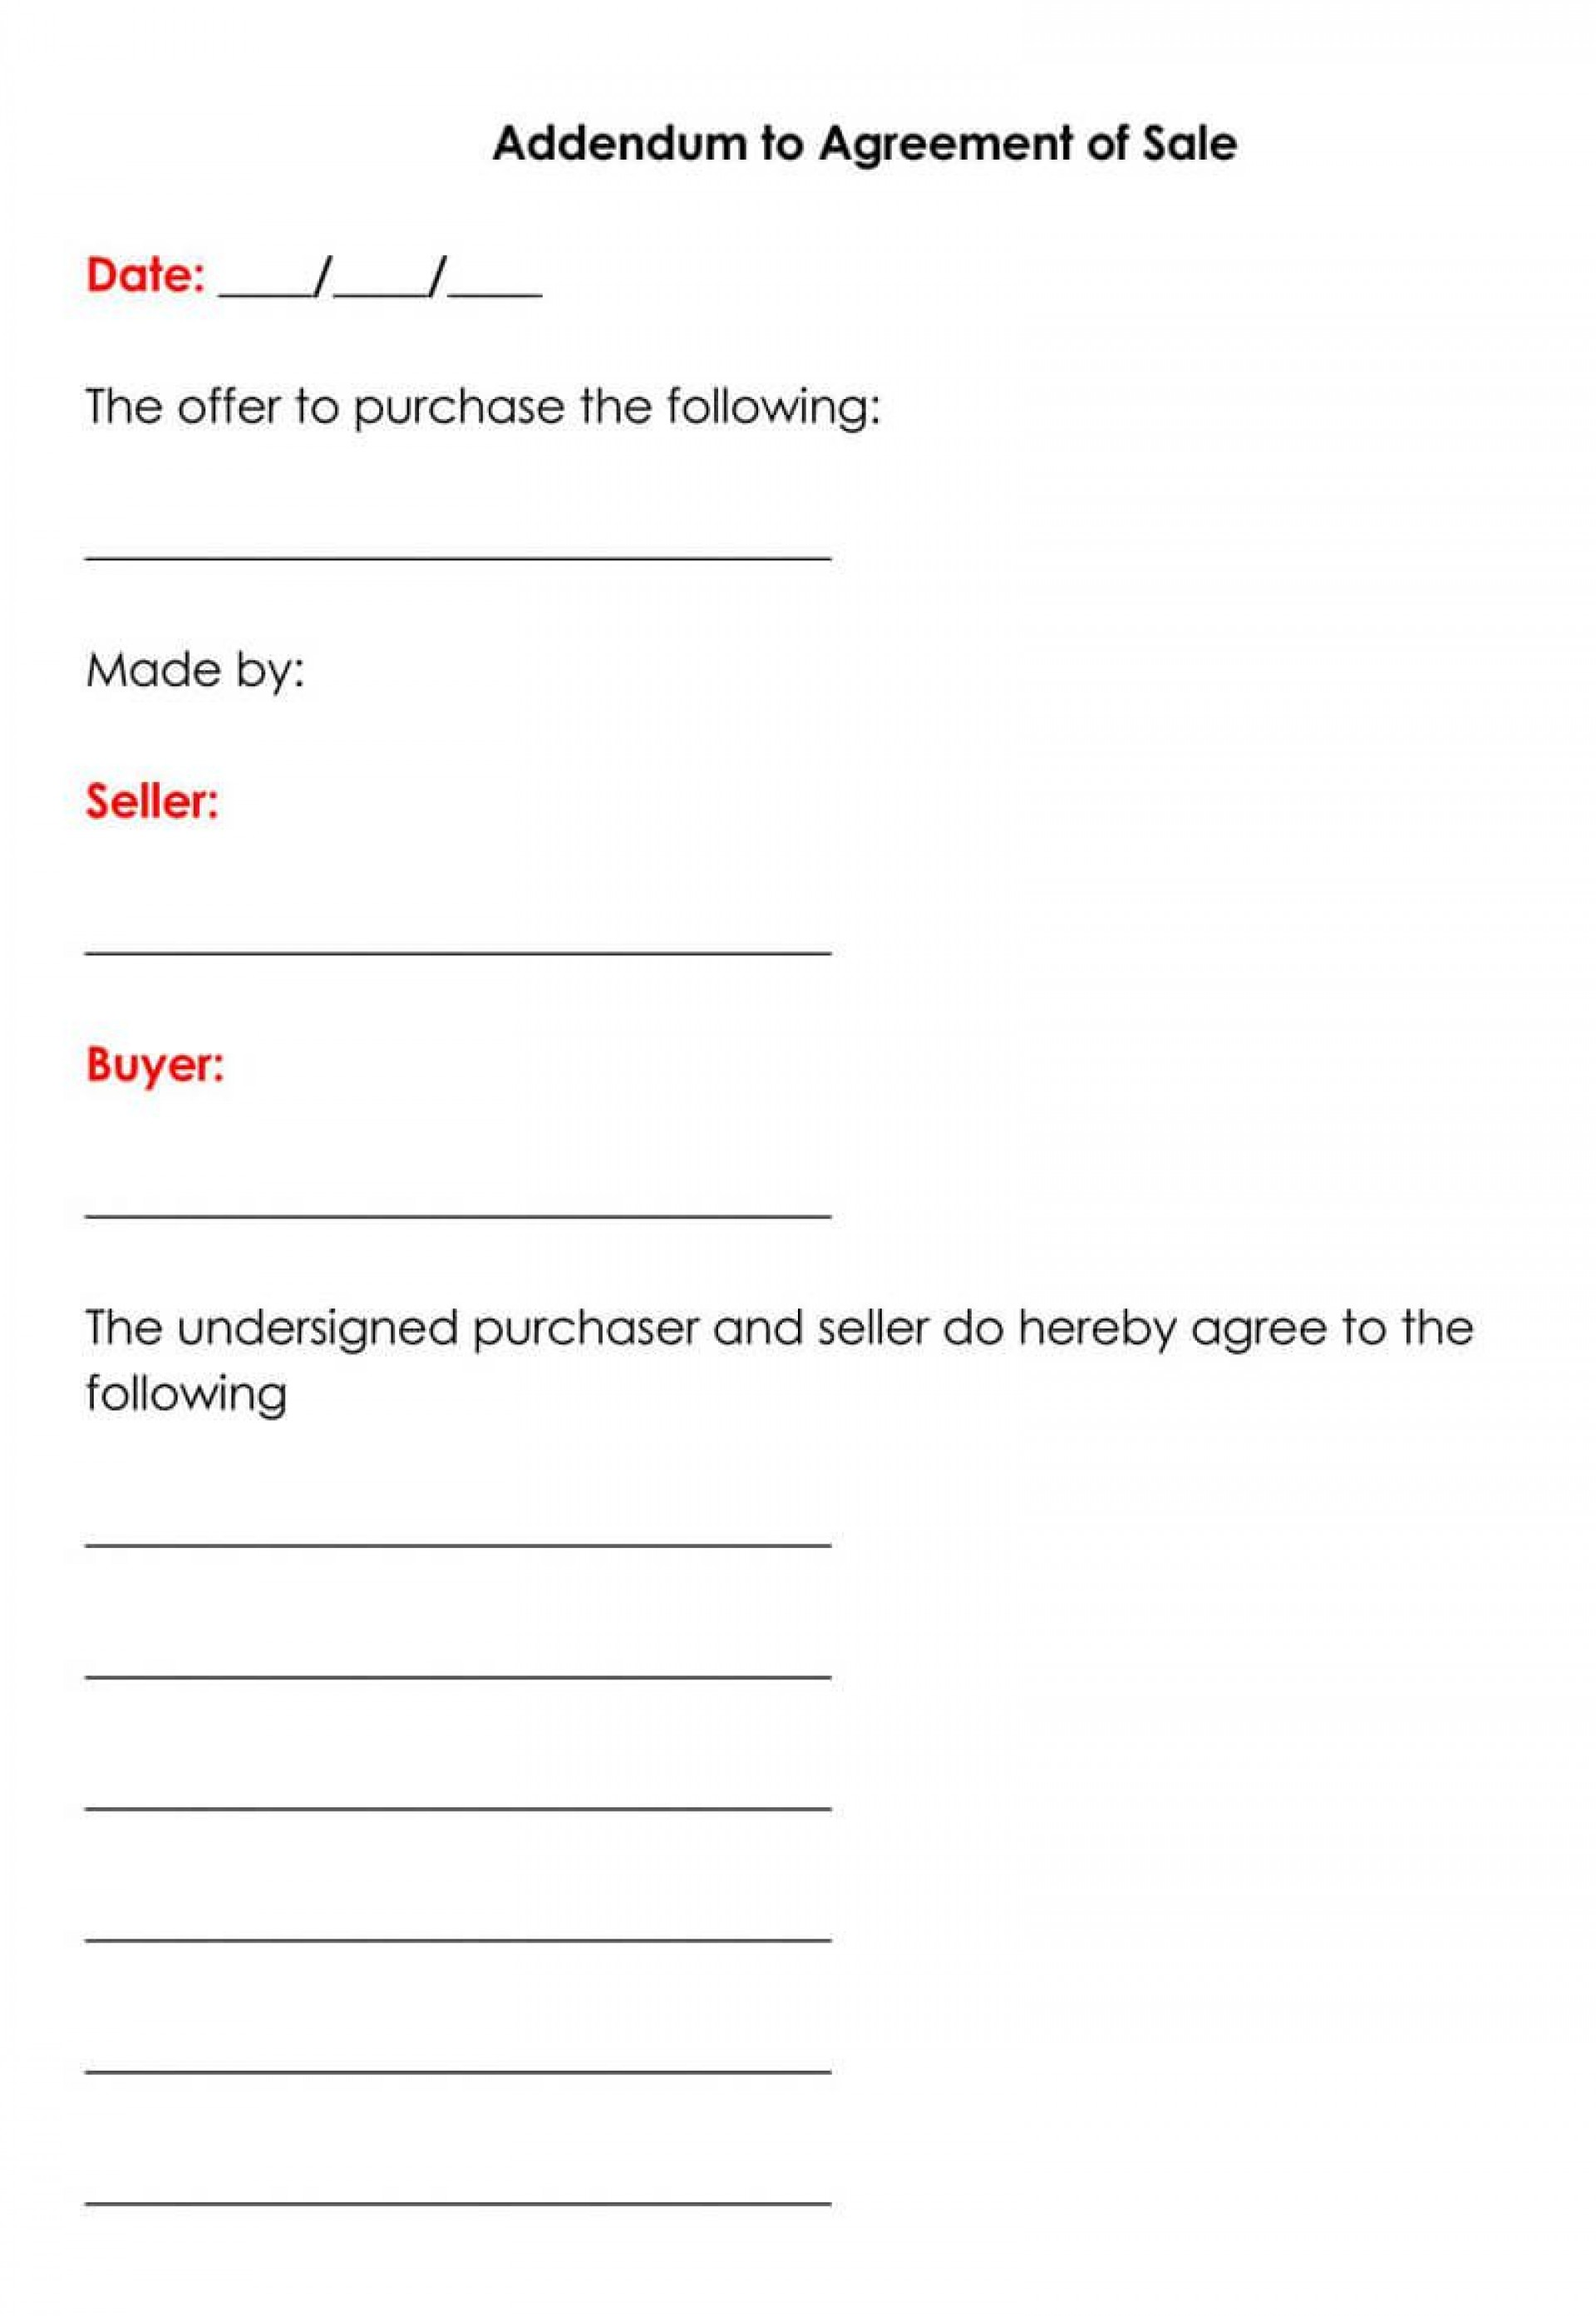 004 Stirring Sale Agreement Template Free Idea  Share Australia Word Busines Download South Africa1920